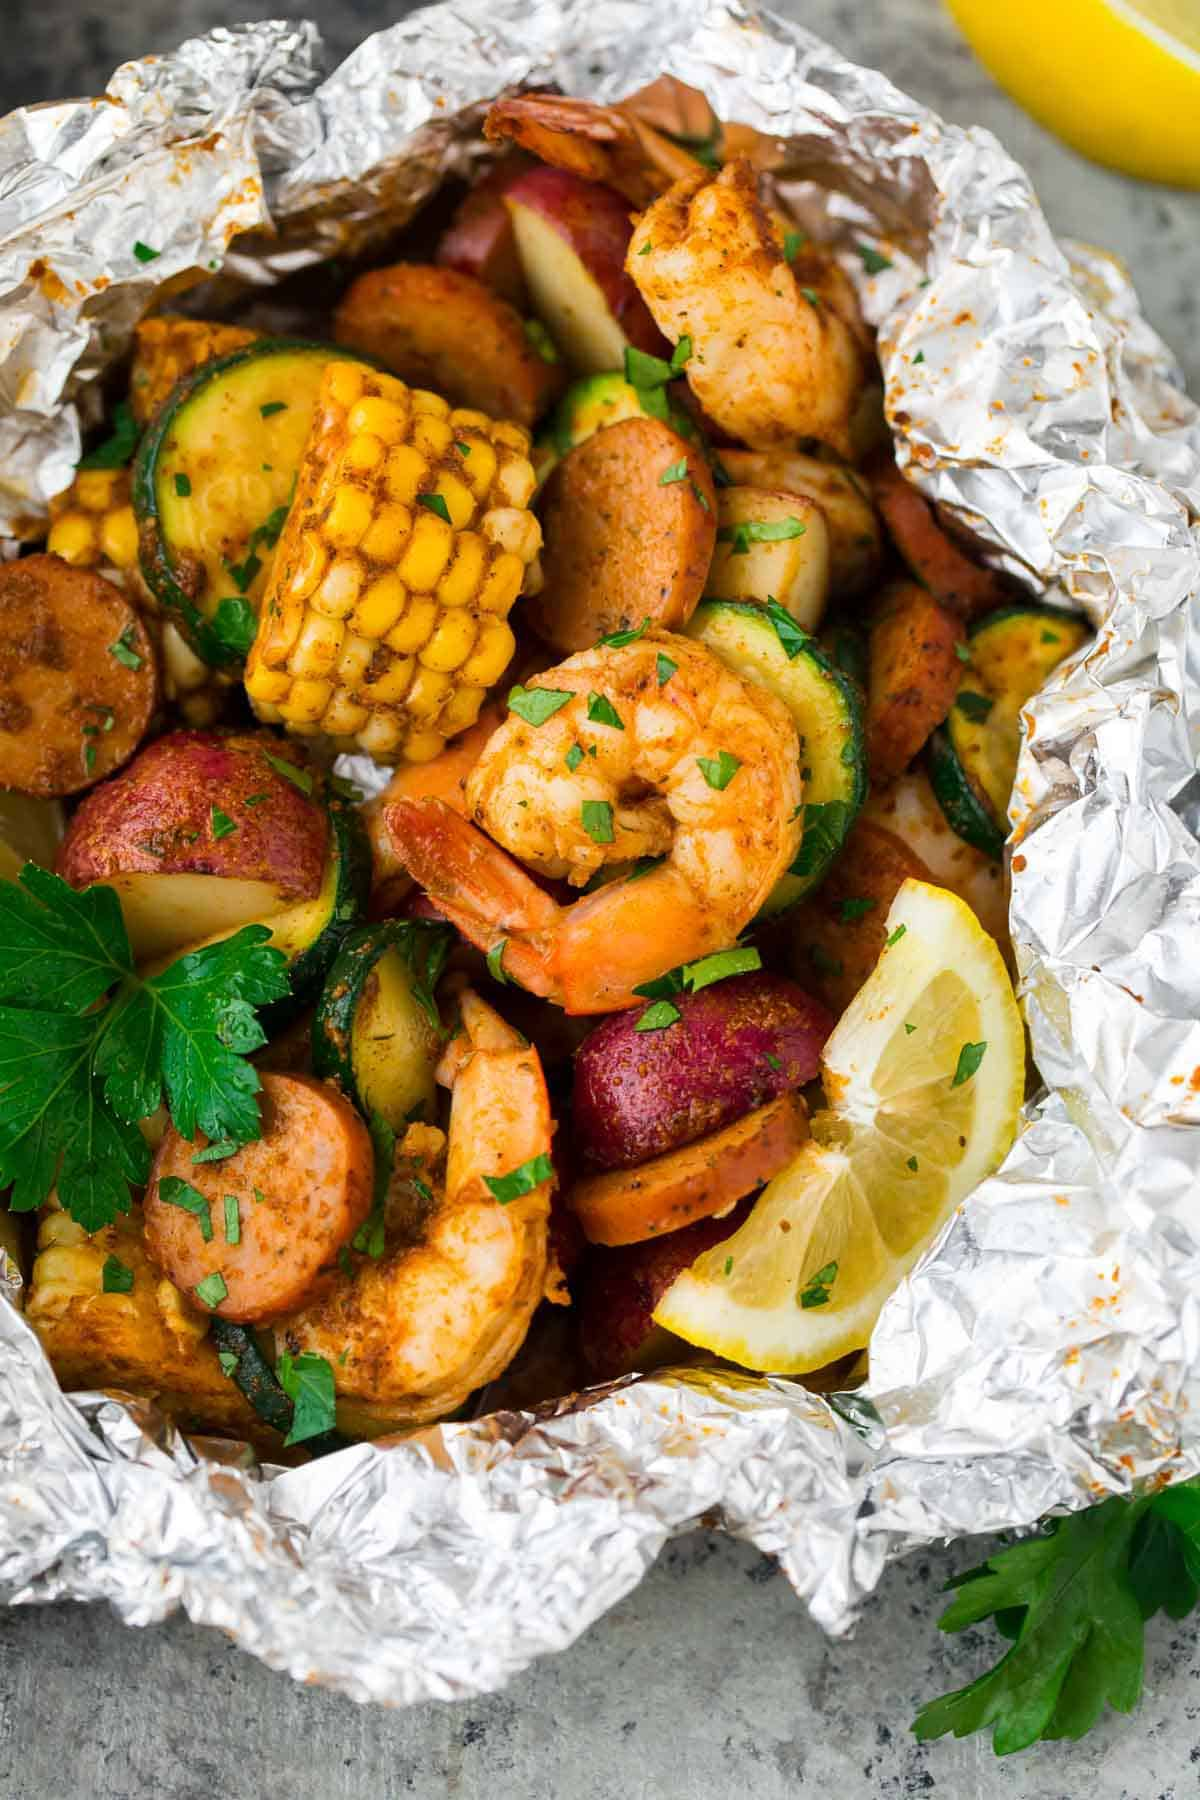 creole shrimp, sausage, and vegetables in a foil packet